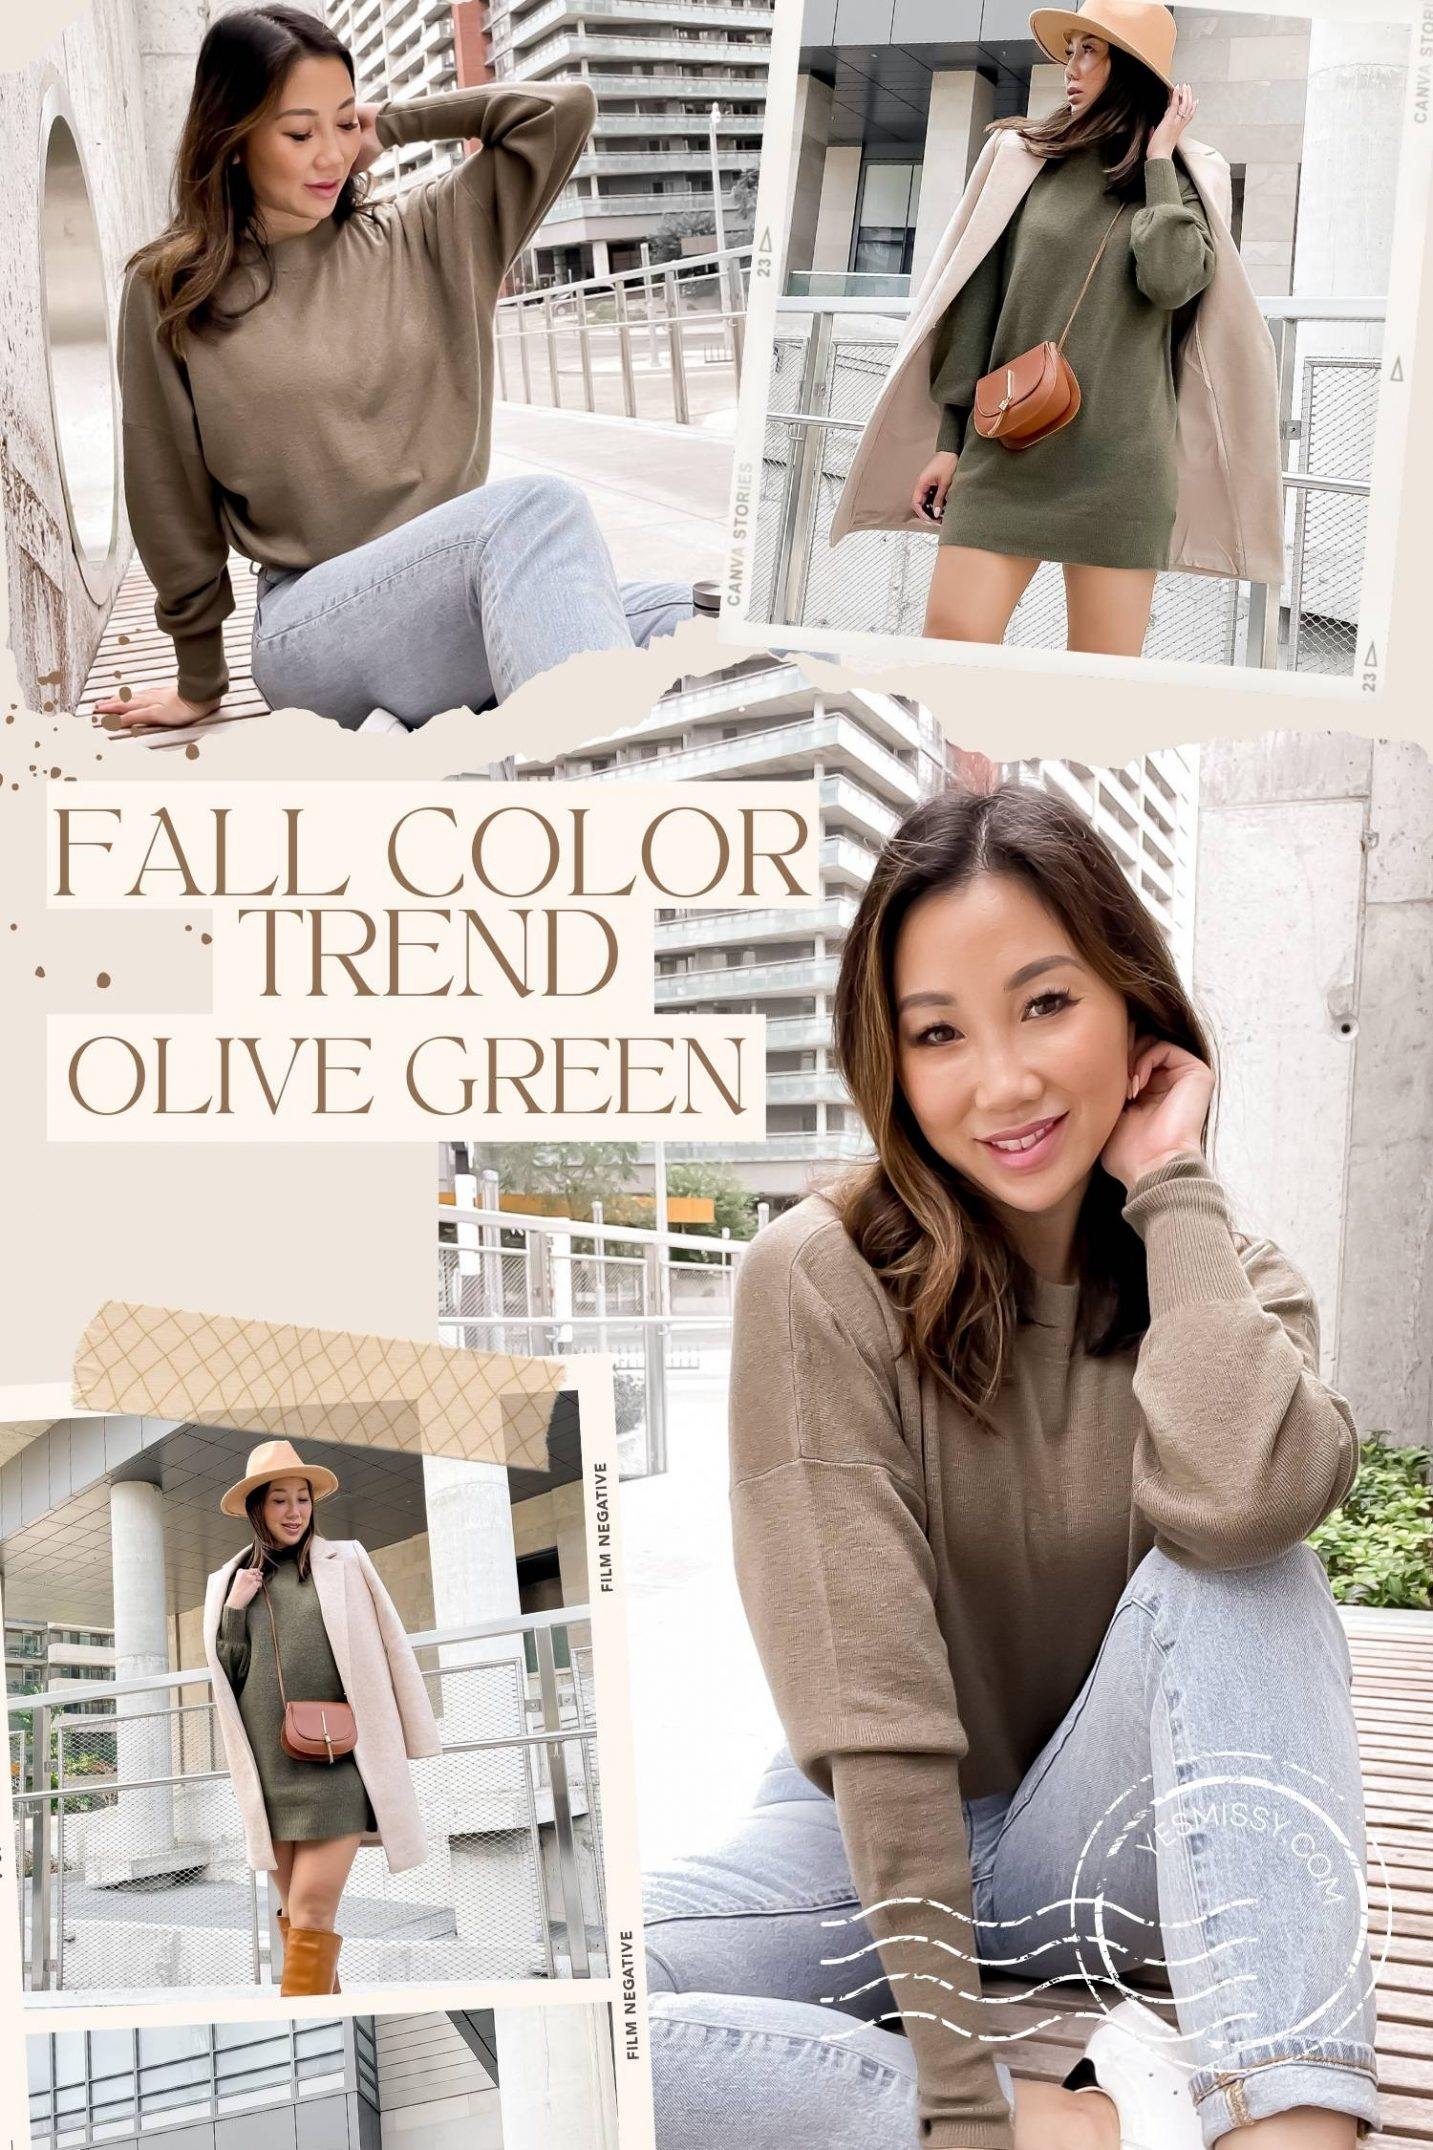 Olive green is a color I can't get enough of! This fall color trend works as almost a neutral and matches with everything in your wardrobe.